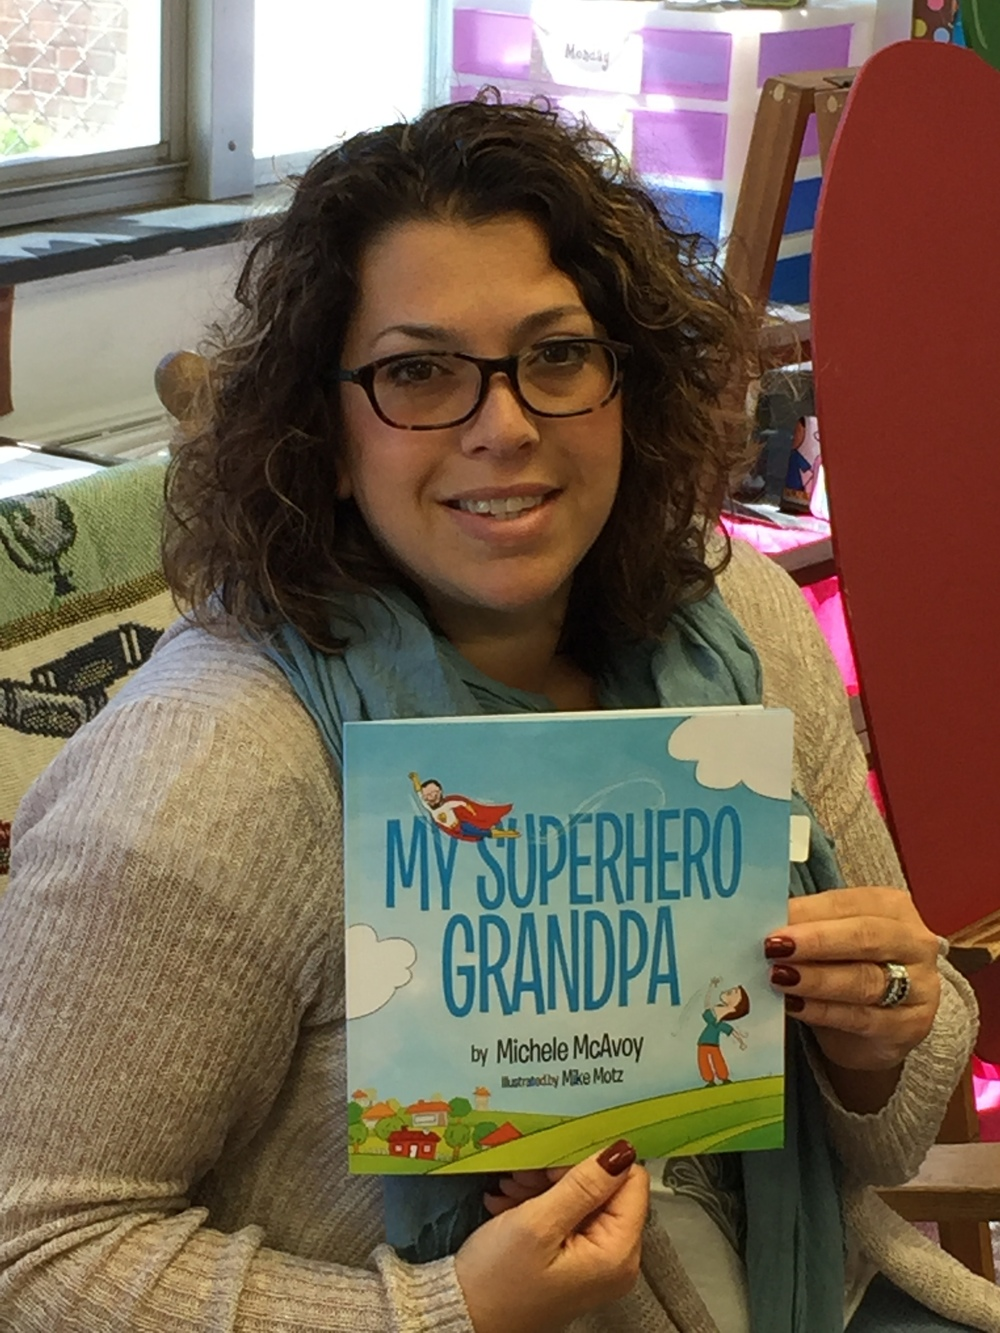 Amy read My Superhero Grandpa as the secret reader at her children's school.